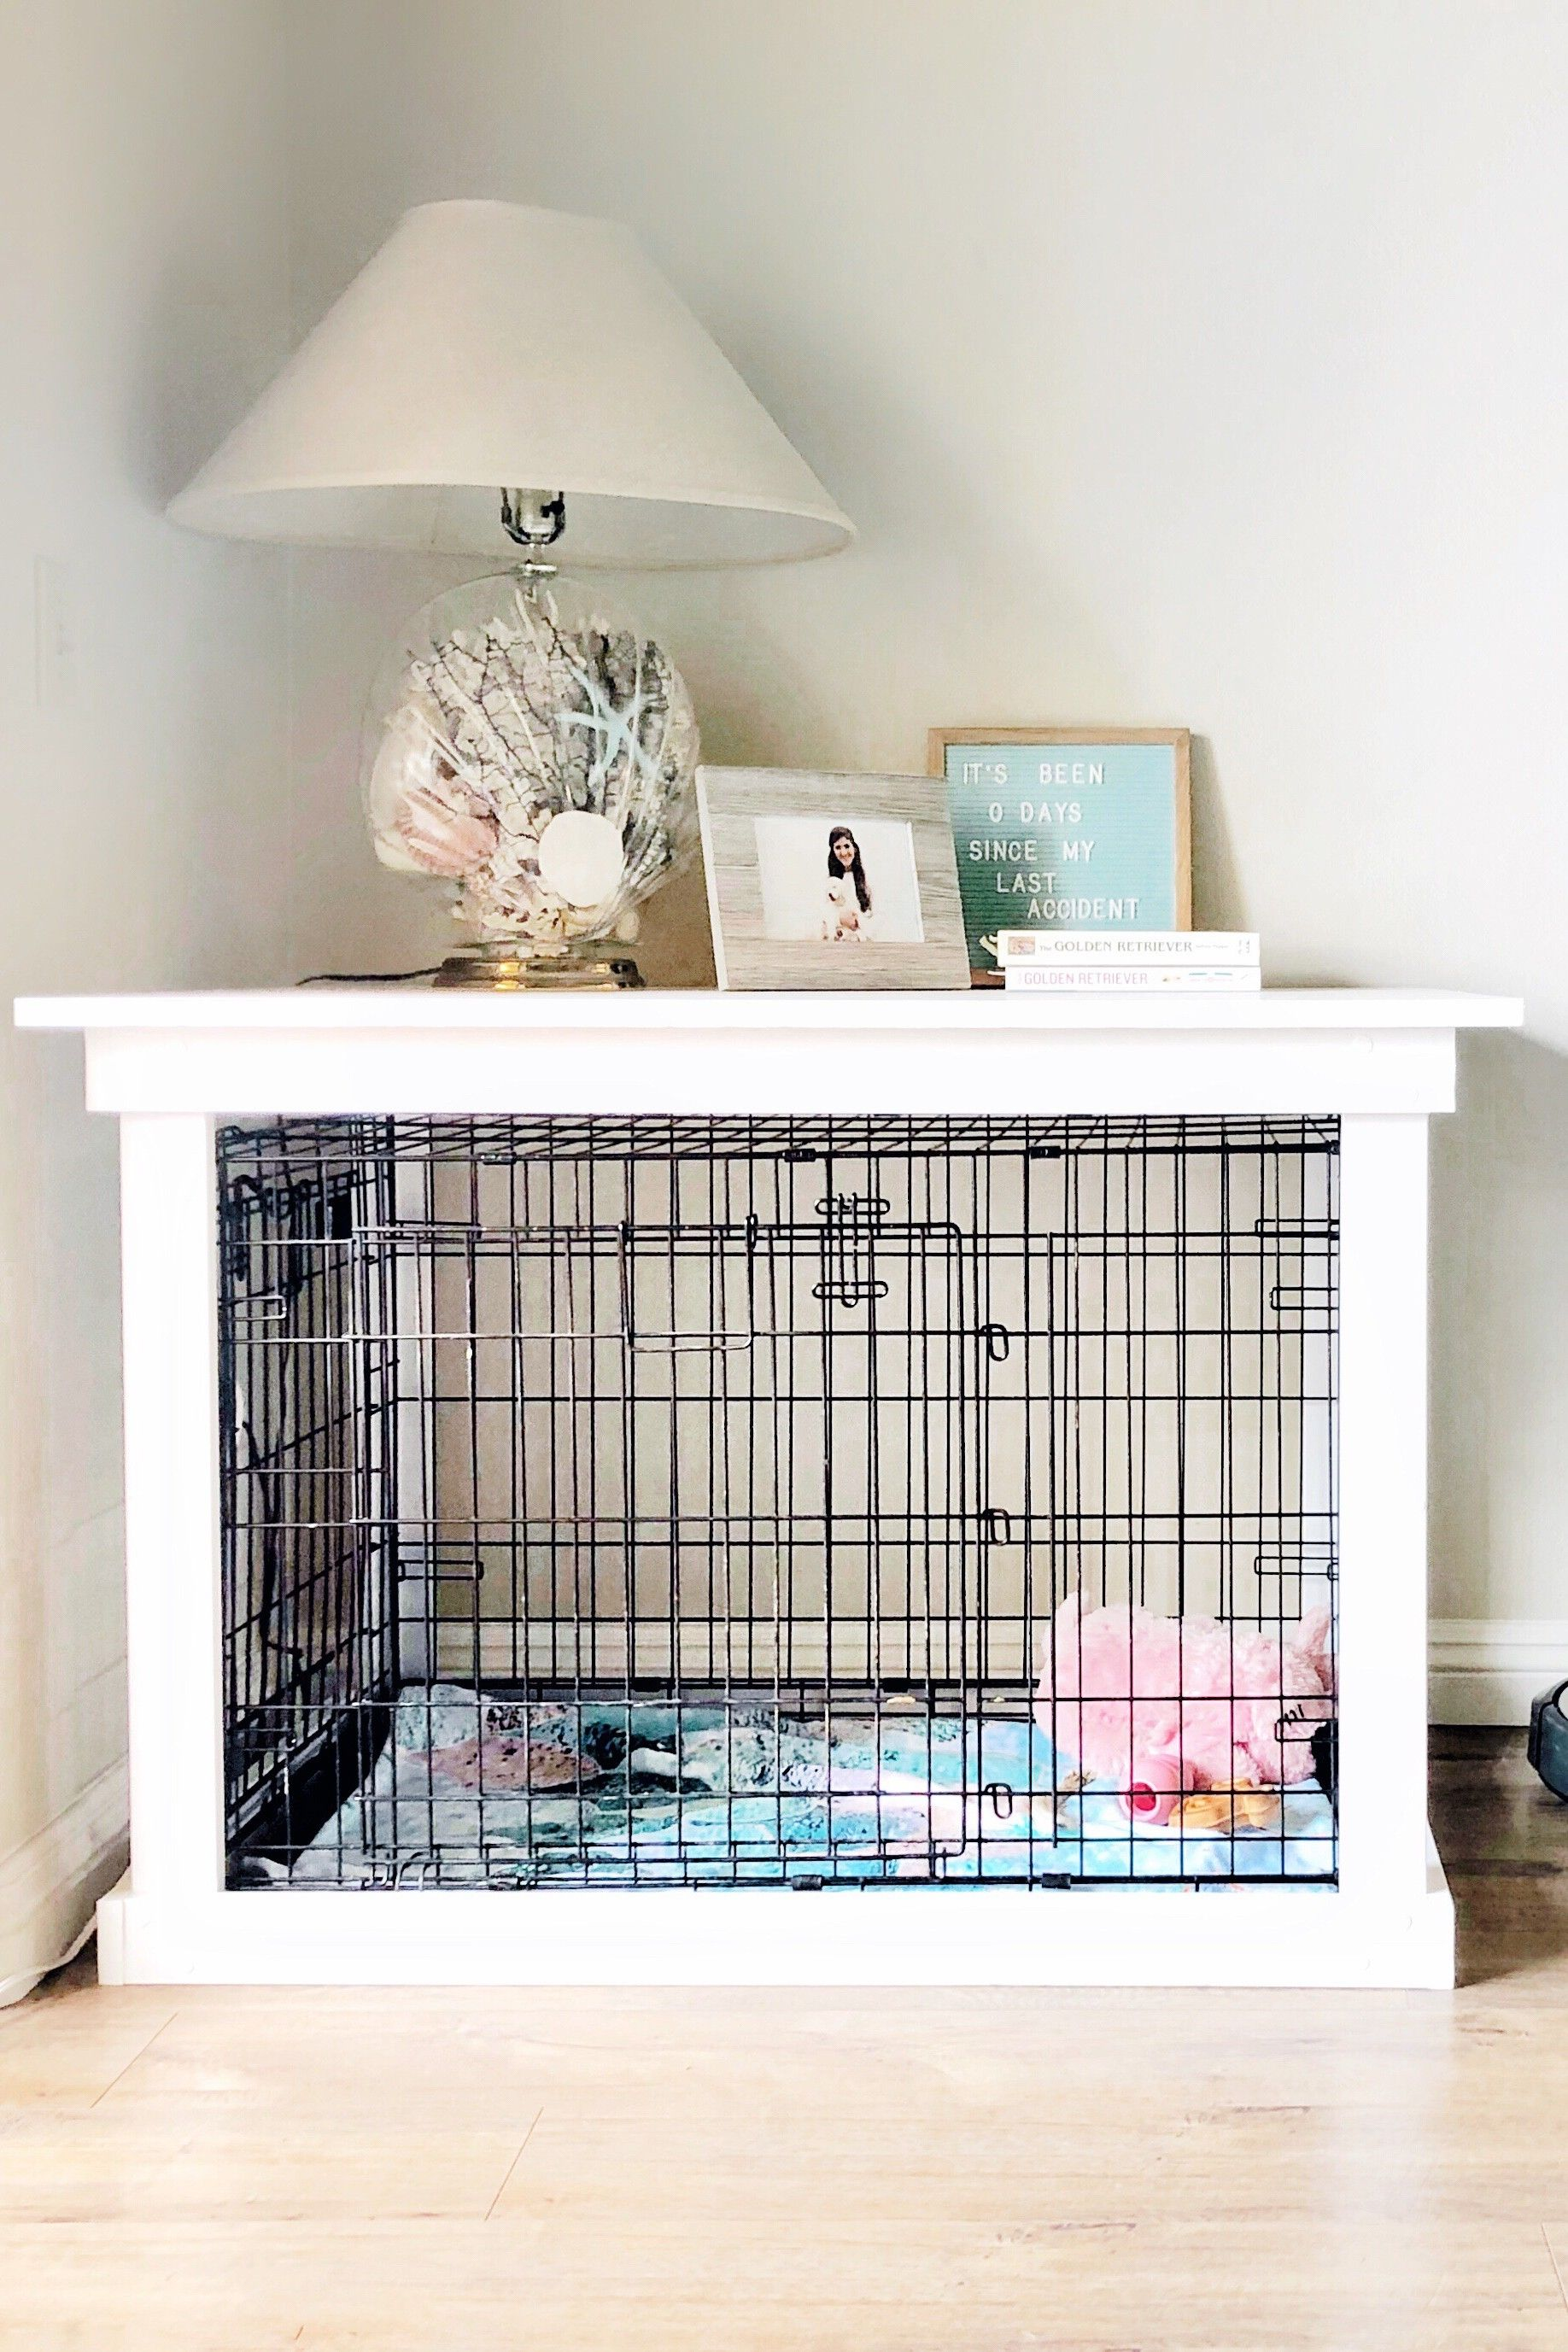 This Diy Dog Crate Is Supercute And Looks Like A Chic Piece Of Furniture Dog Crate Furniture Crate Furniture Diy Dog Crate